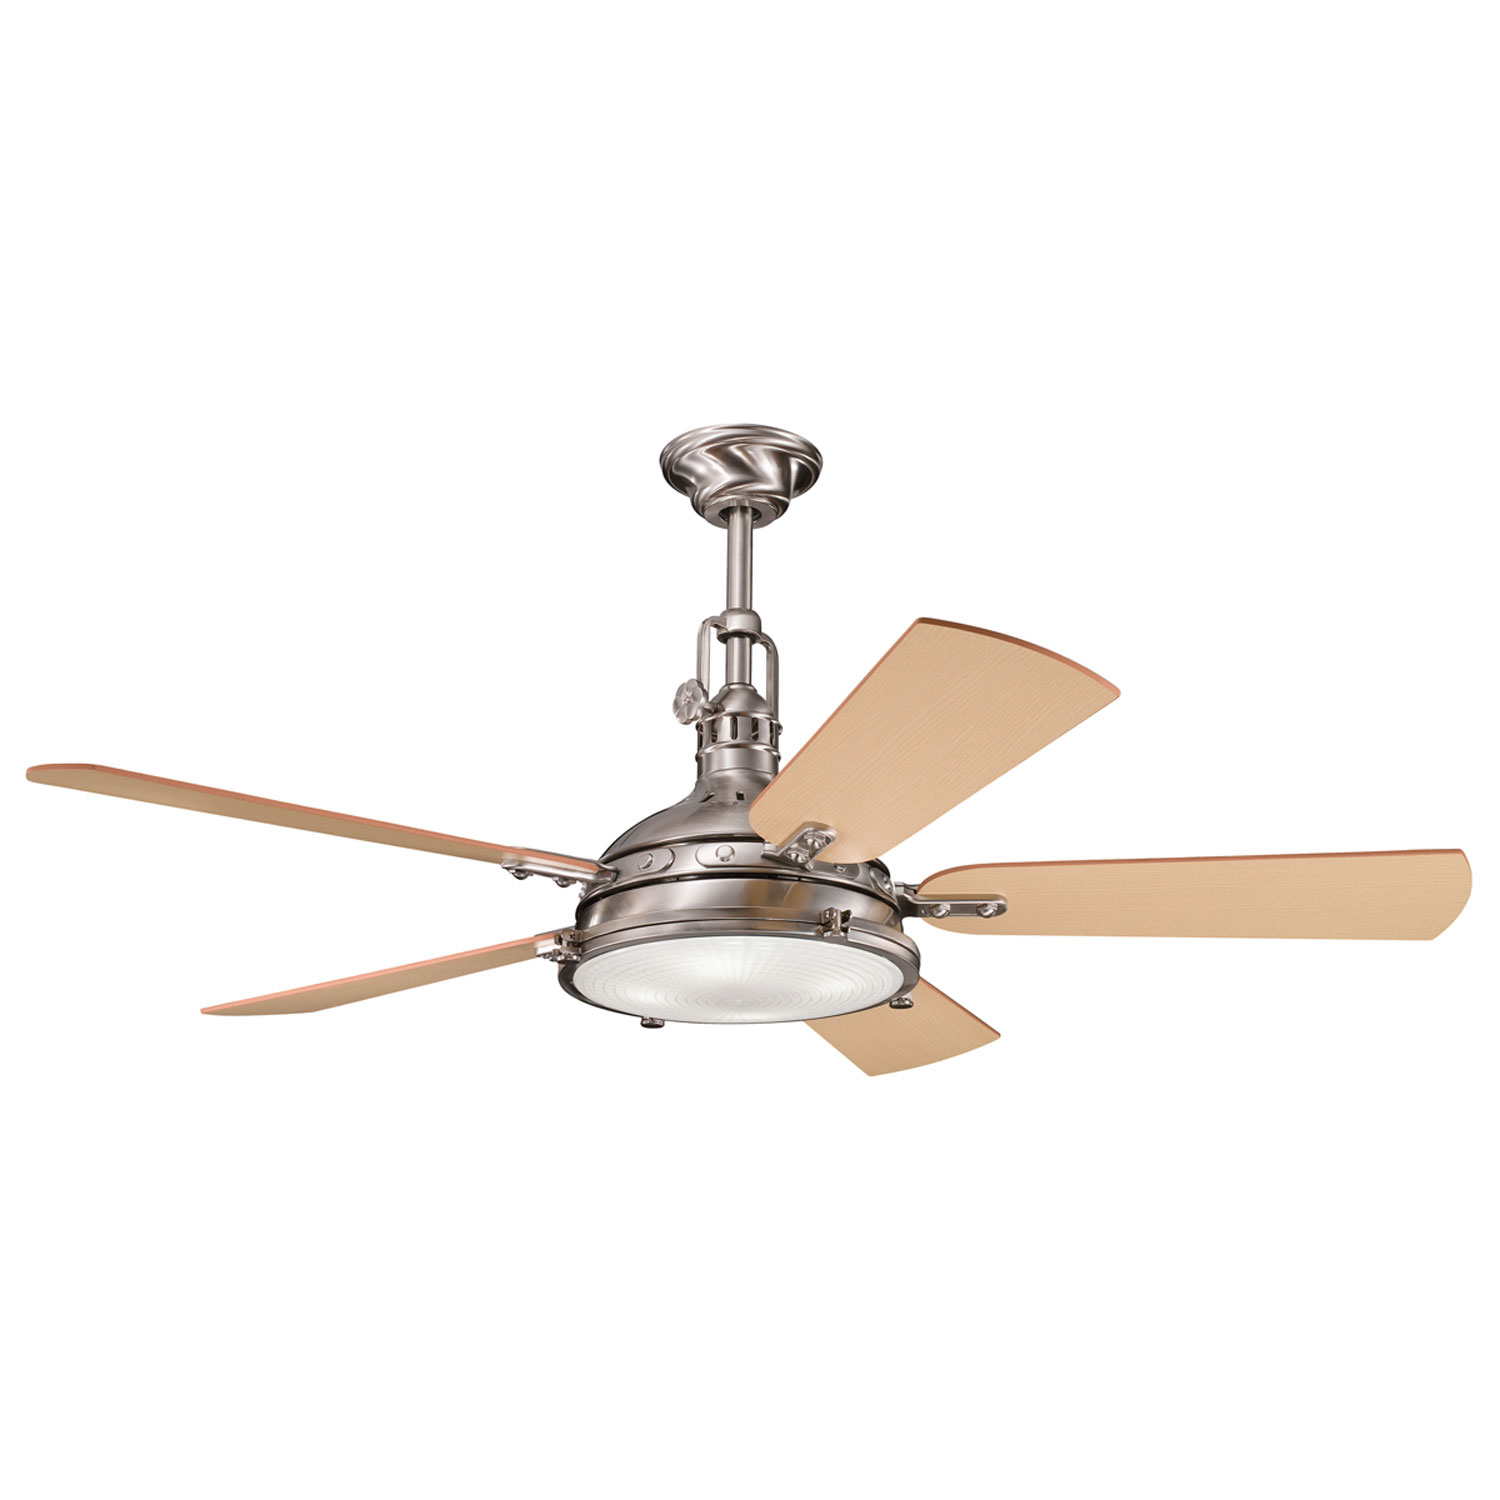 56 inchCeiling Fan from the Hatteras Bay collection by Kichler 300018BSS